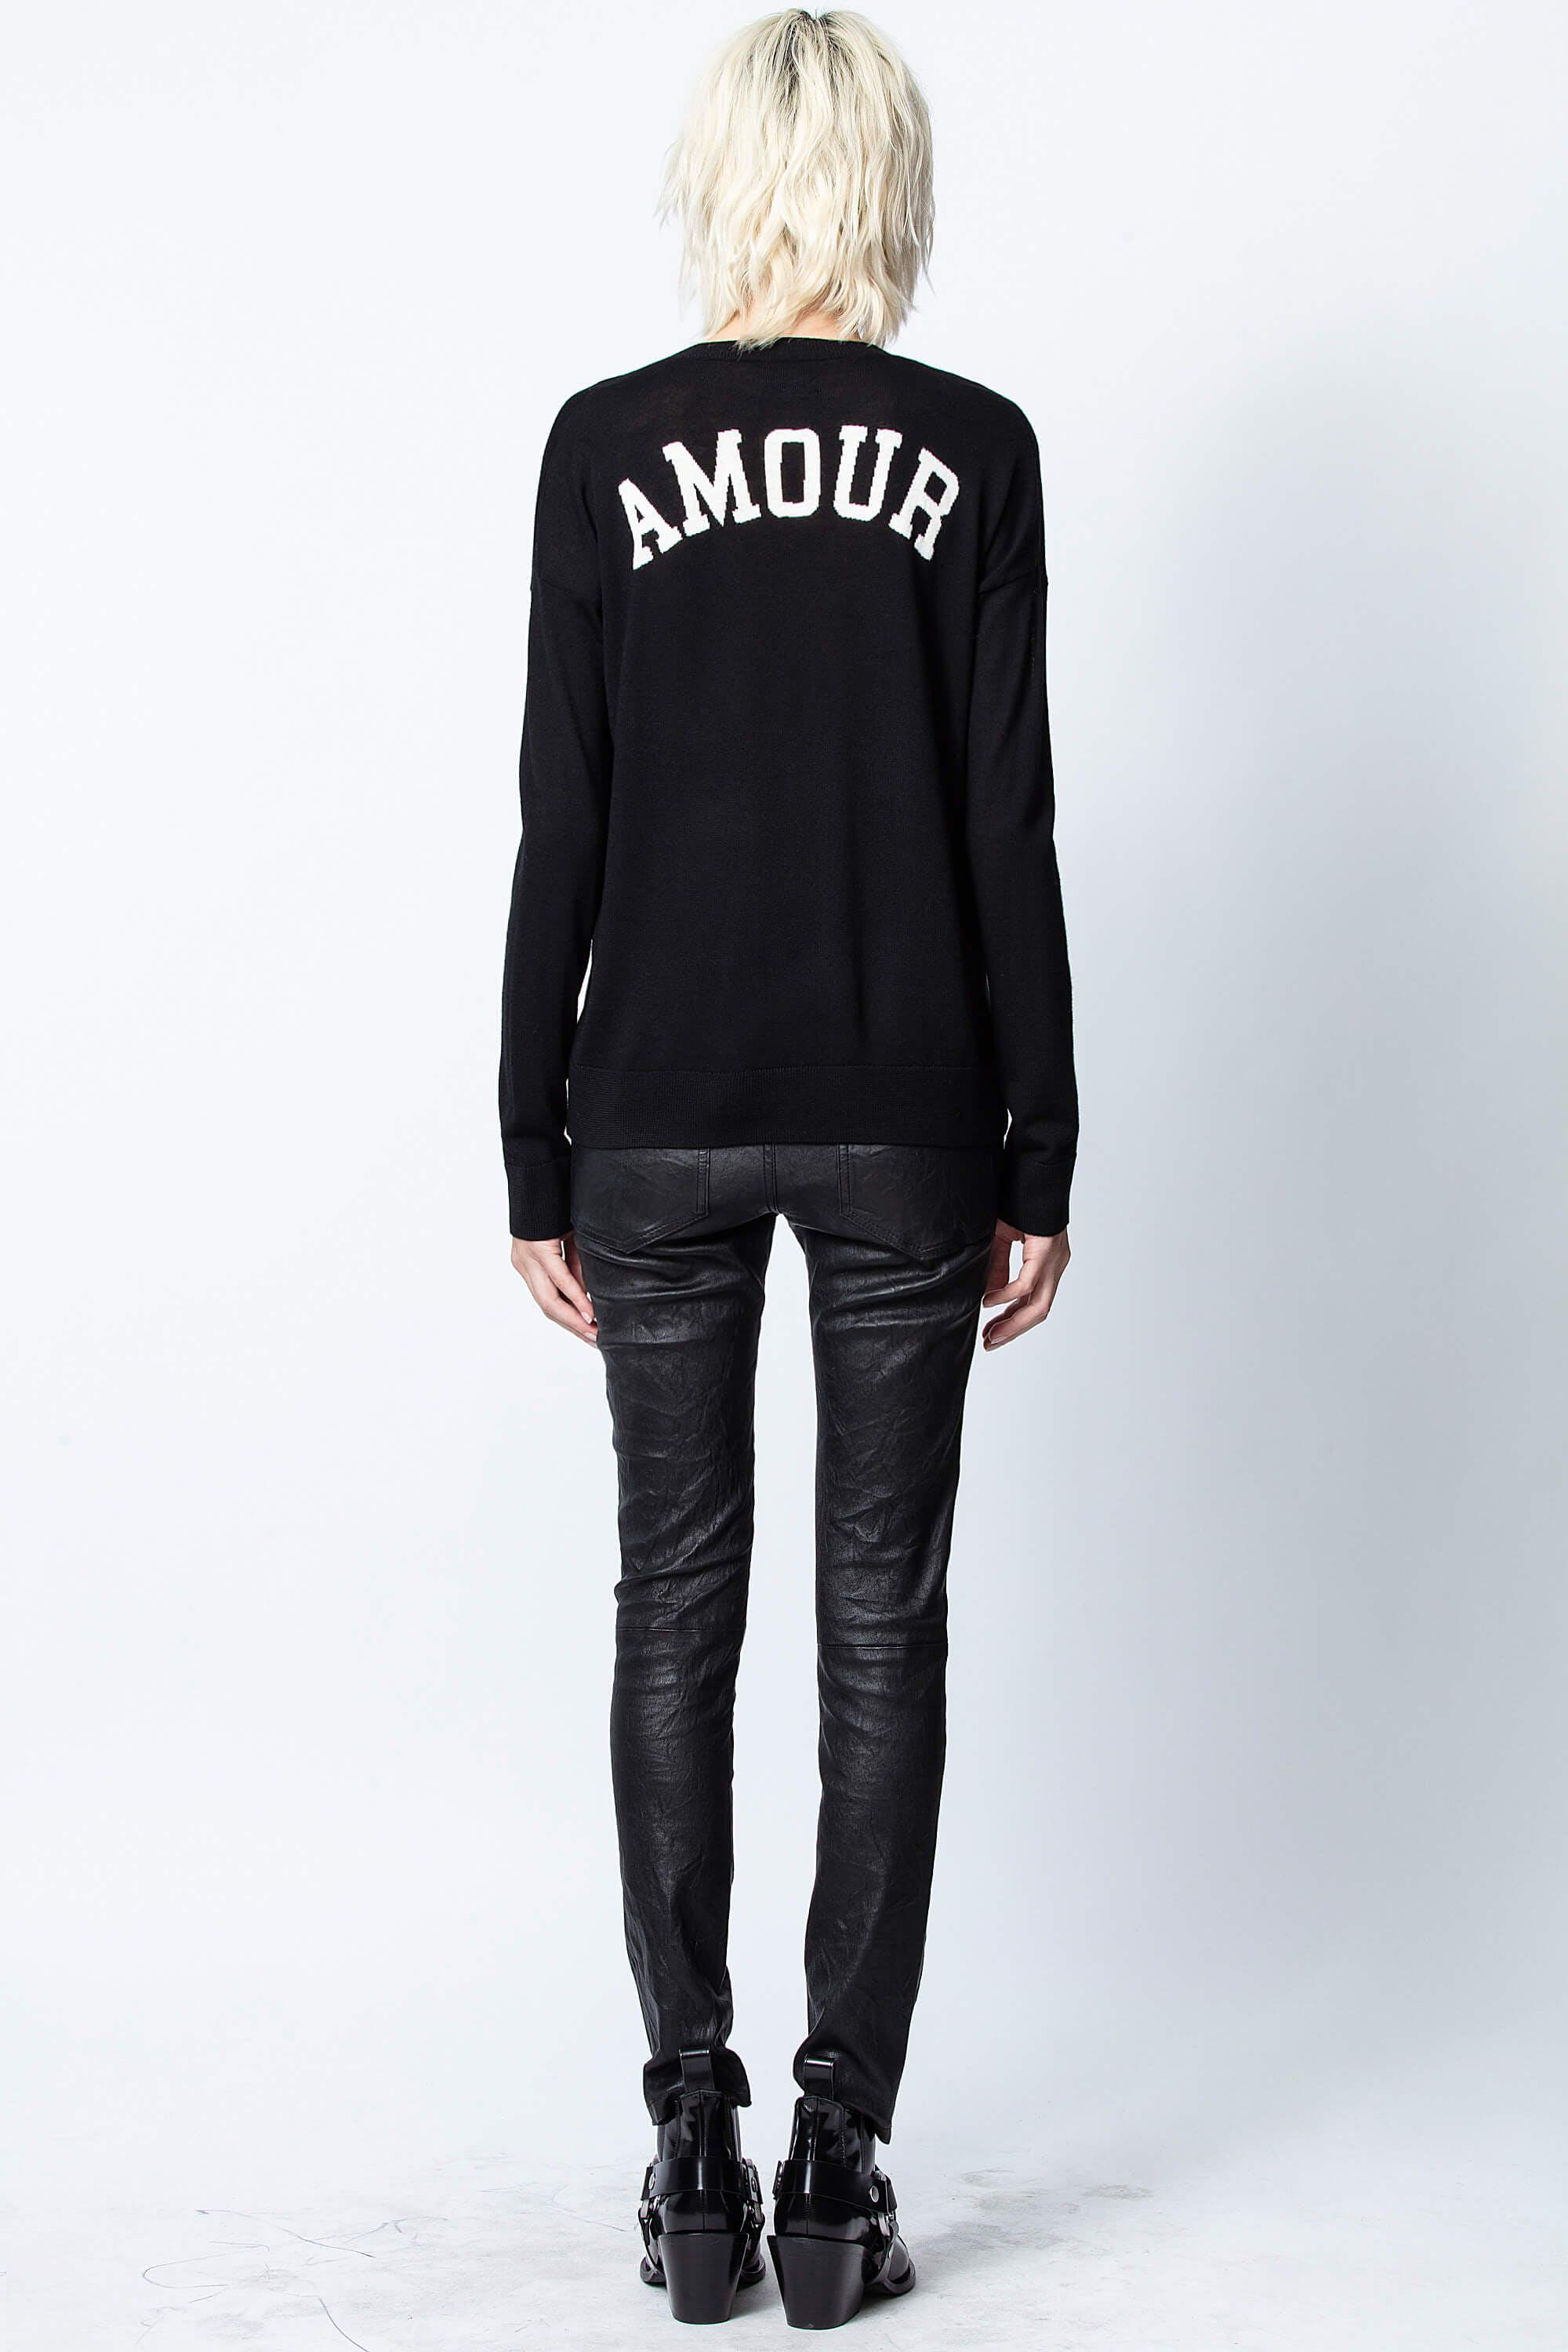 Happy Amour Sweater 3